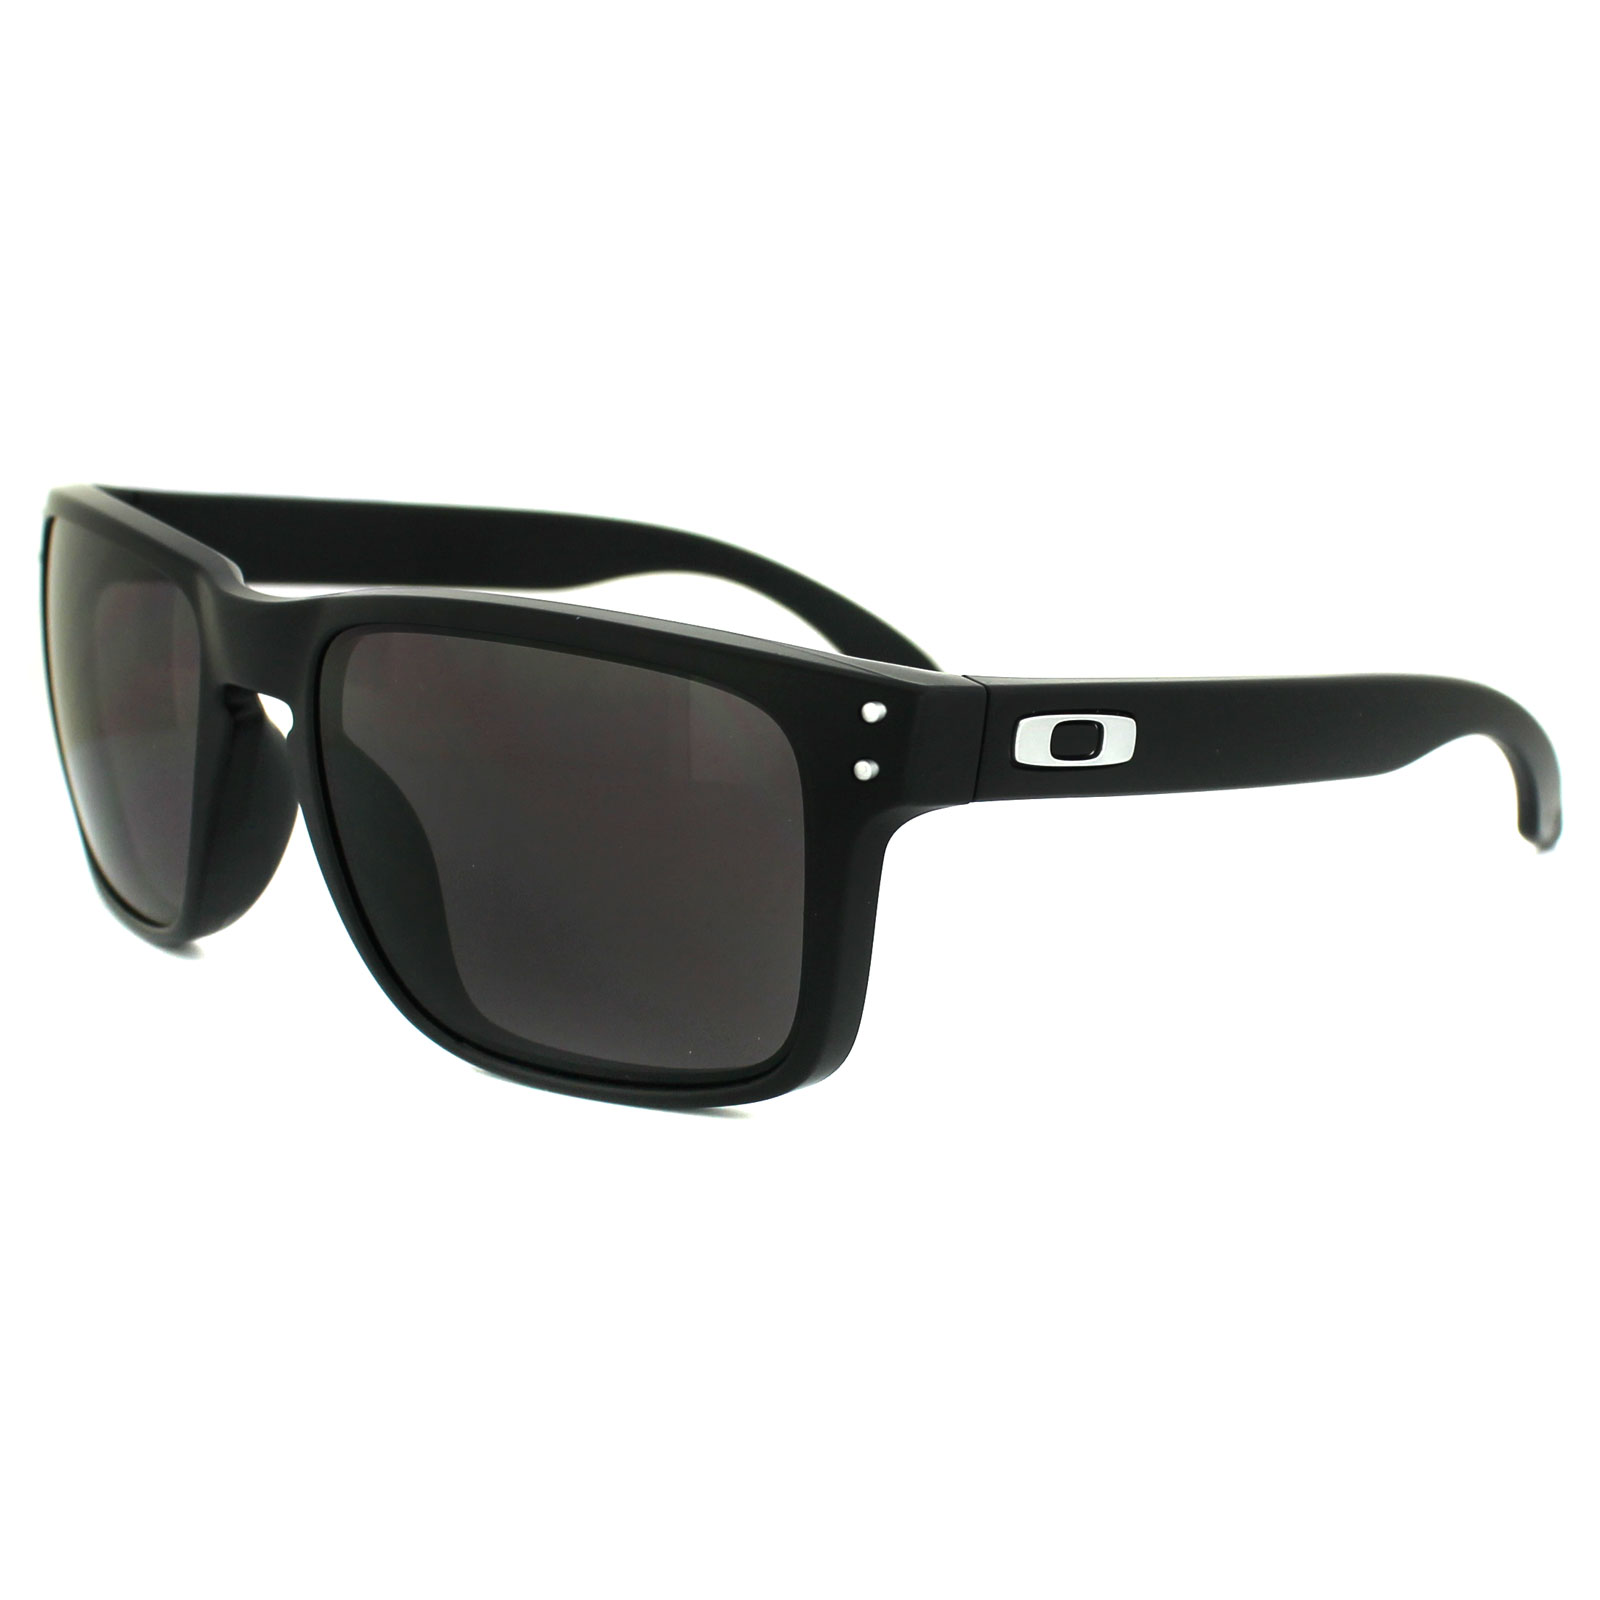 Buy Oakley Holbrook Sunglasses